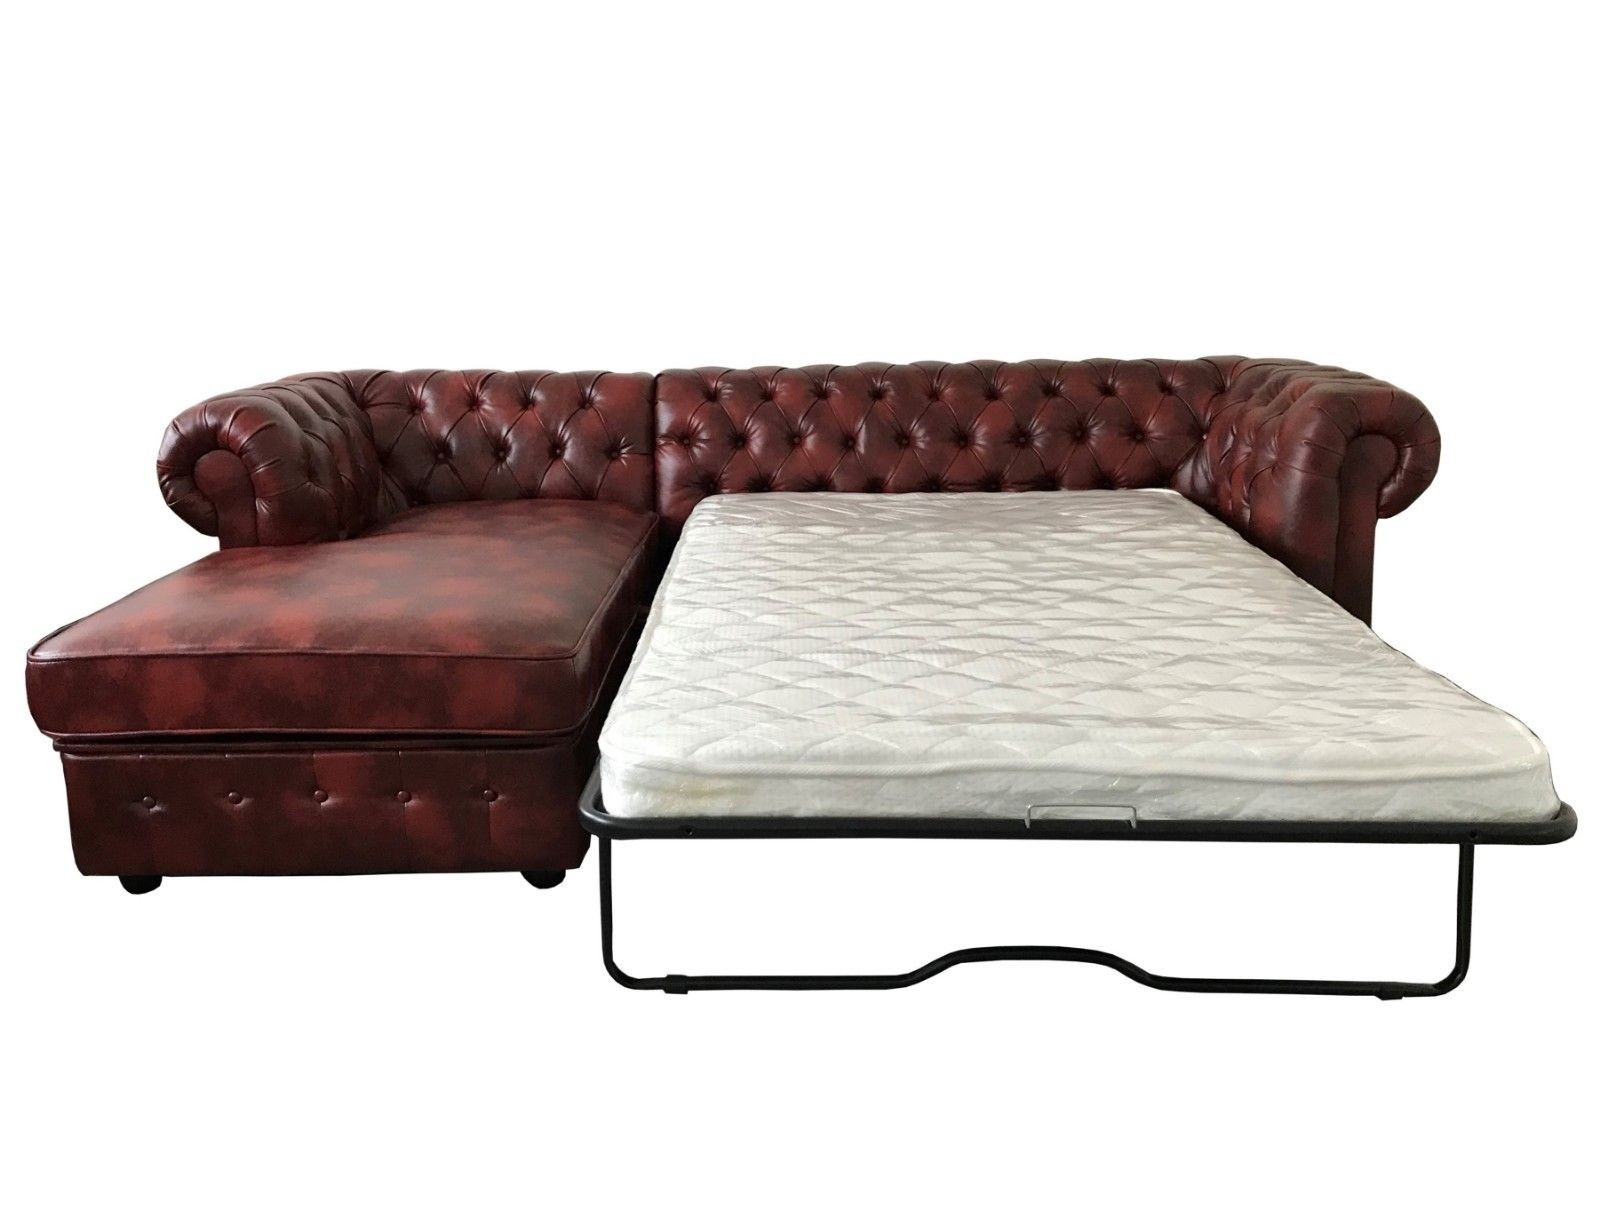 oxblood red chesterfield sofa wedge pillow empire left hand bed sofas